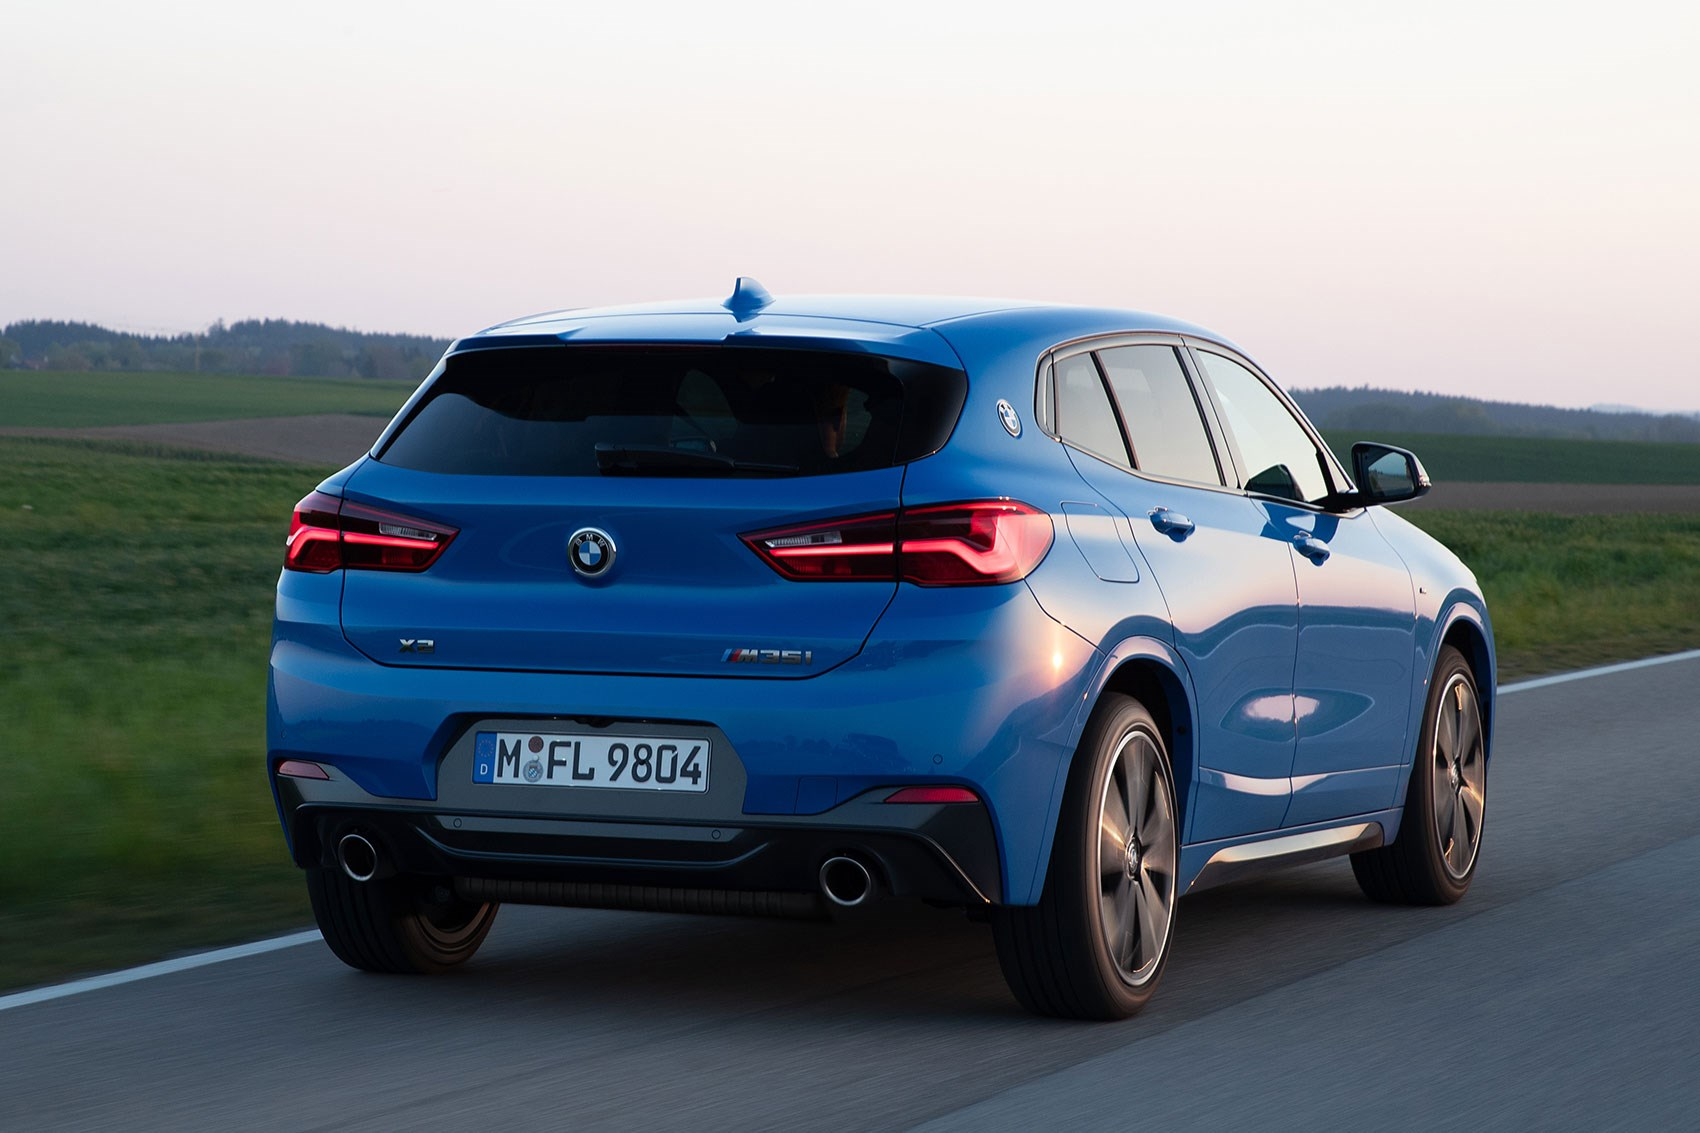 BMW X2 M35i: UK prices and specs from £43,315